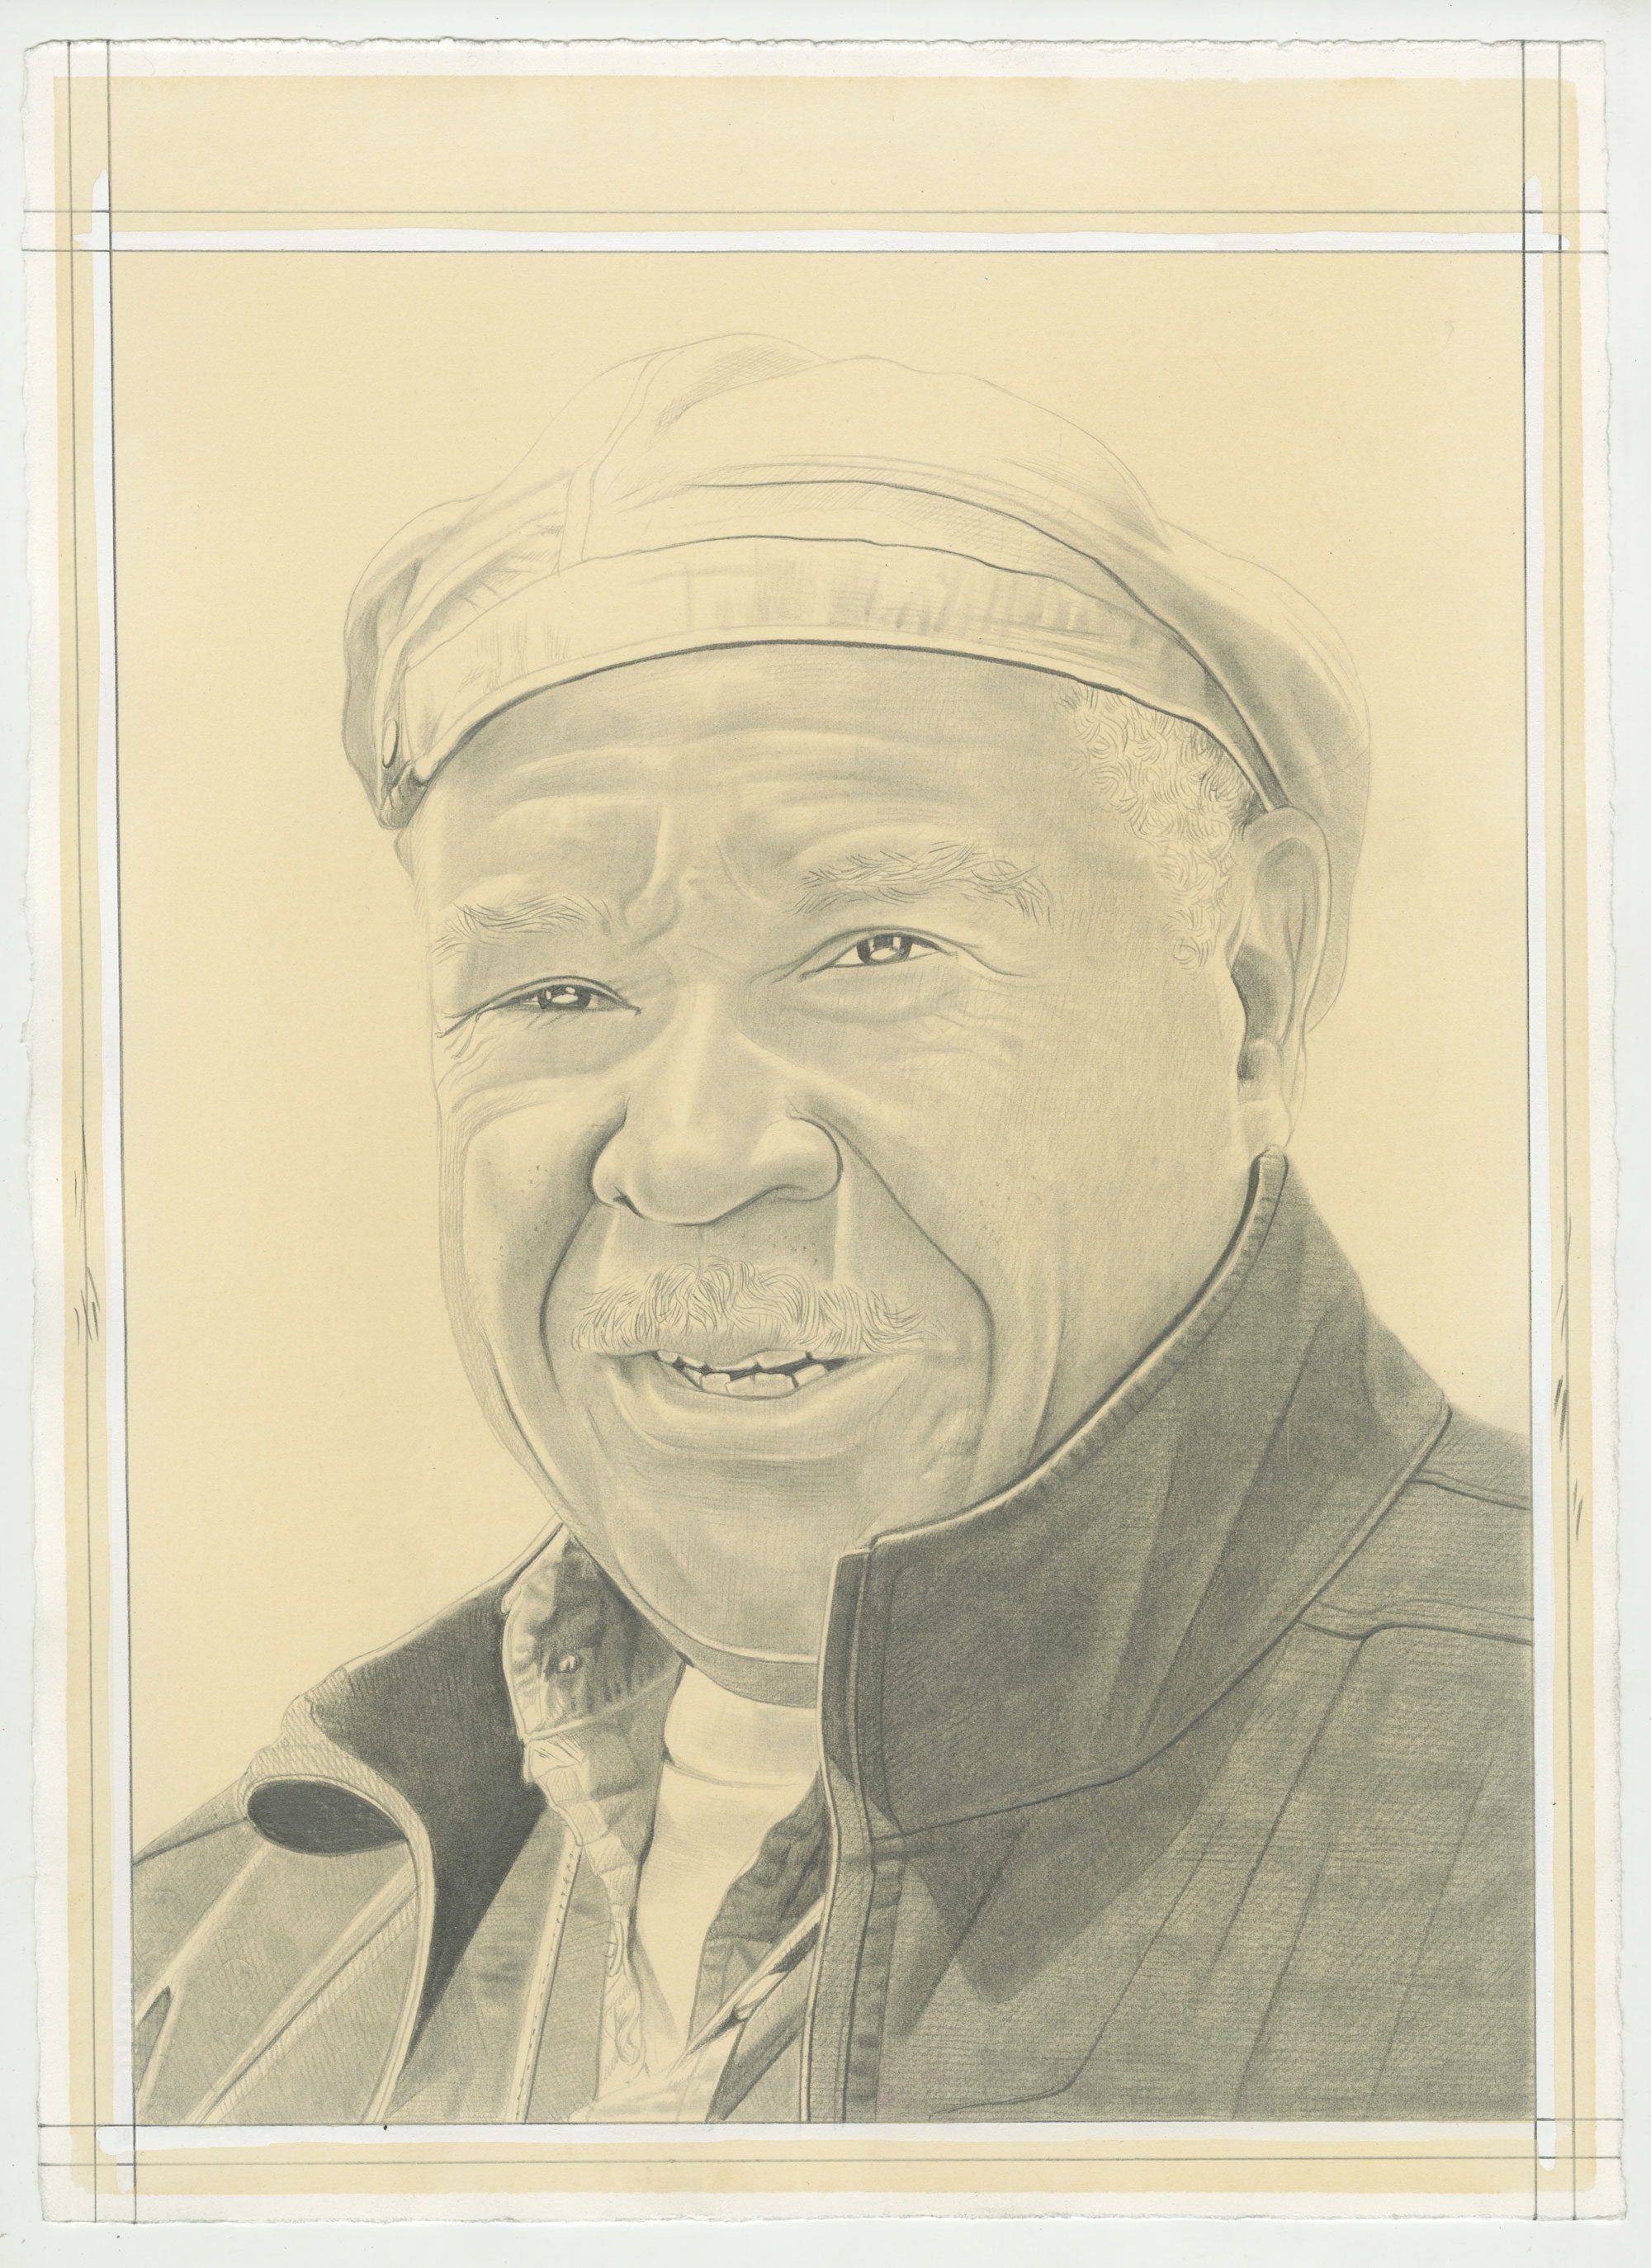 Portrait of Melvin Edwards, pencil on paper by Phong Bui.